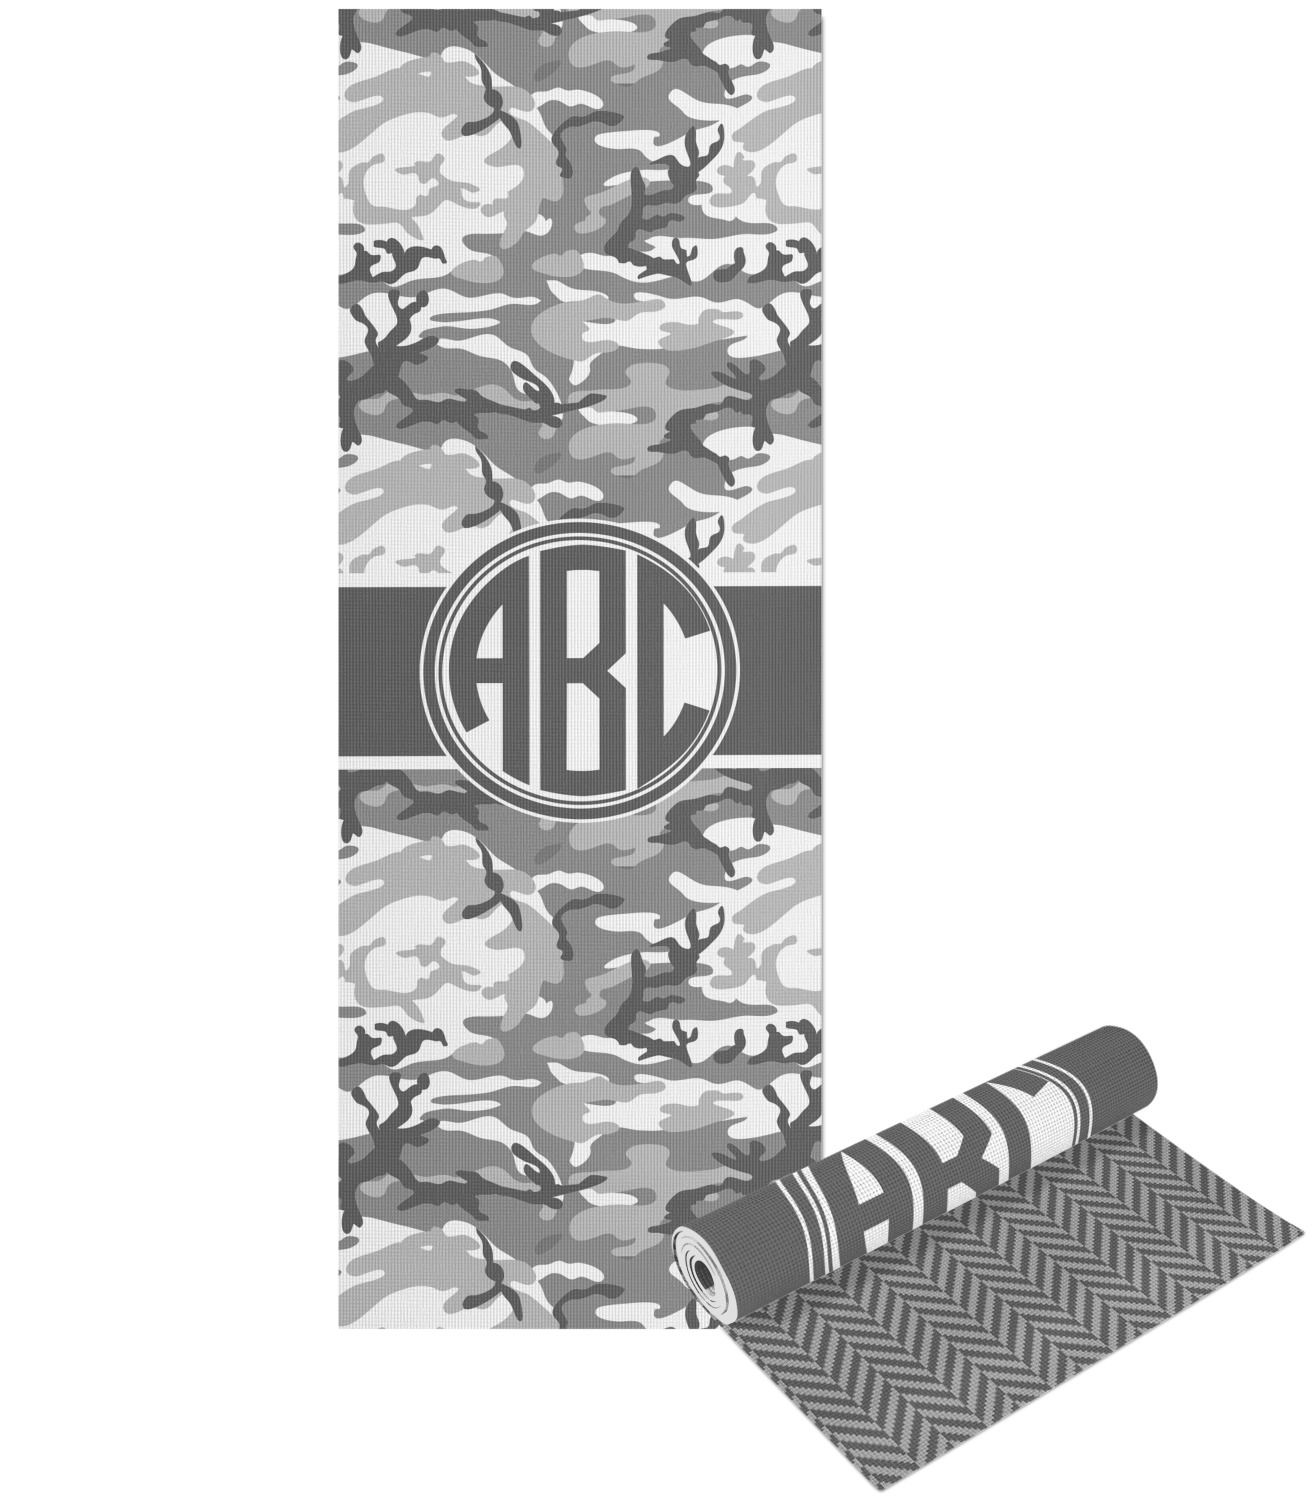 graphic relating to Camo Printable identify Camo Yoga Mat - Printable Entrance and Again (Tailored)